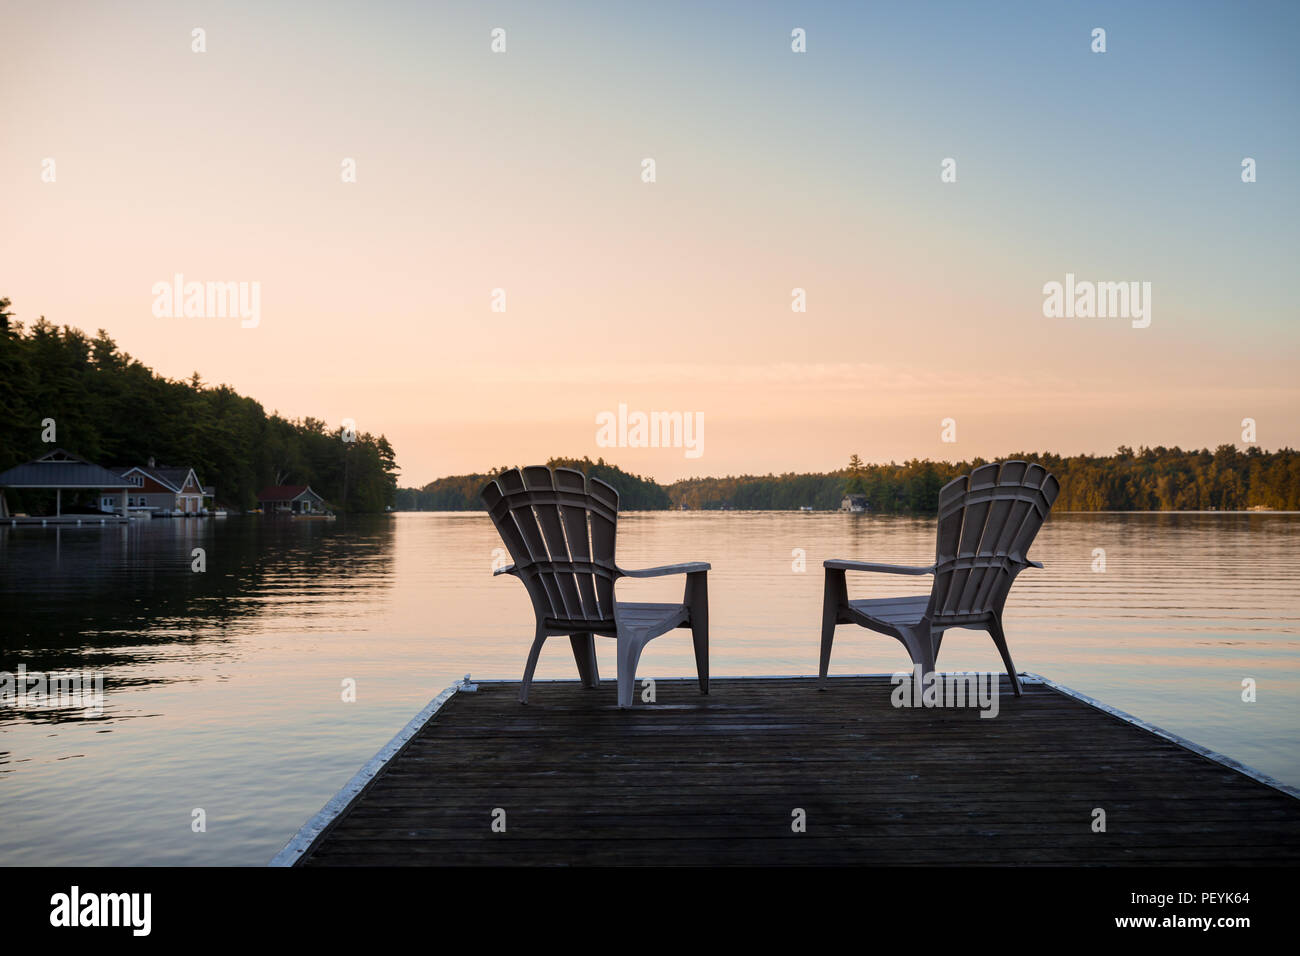 Muskoka chairs sitting at the end of a dock in front of Lake Joseph at sunrise. - Stock Image